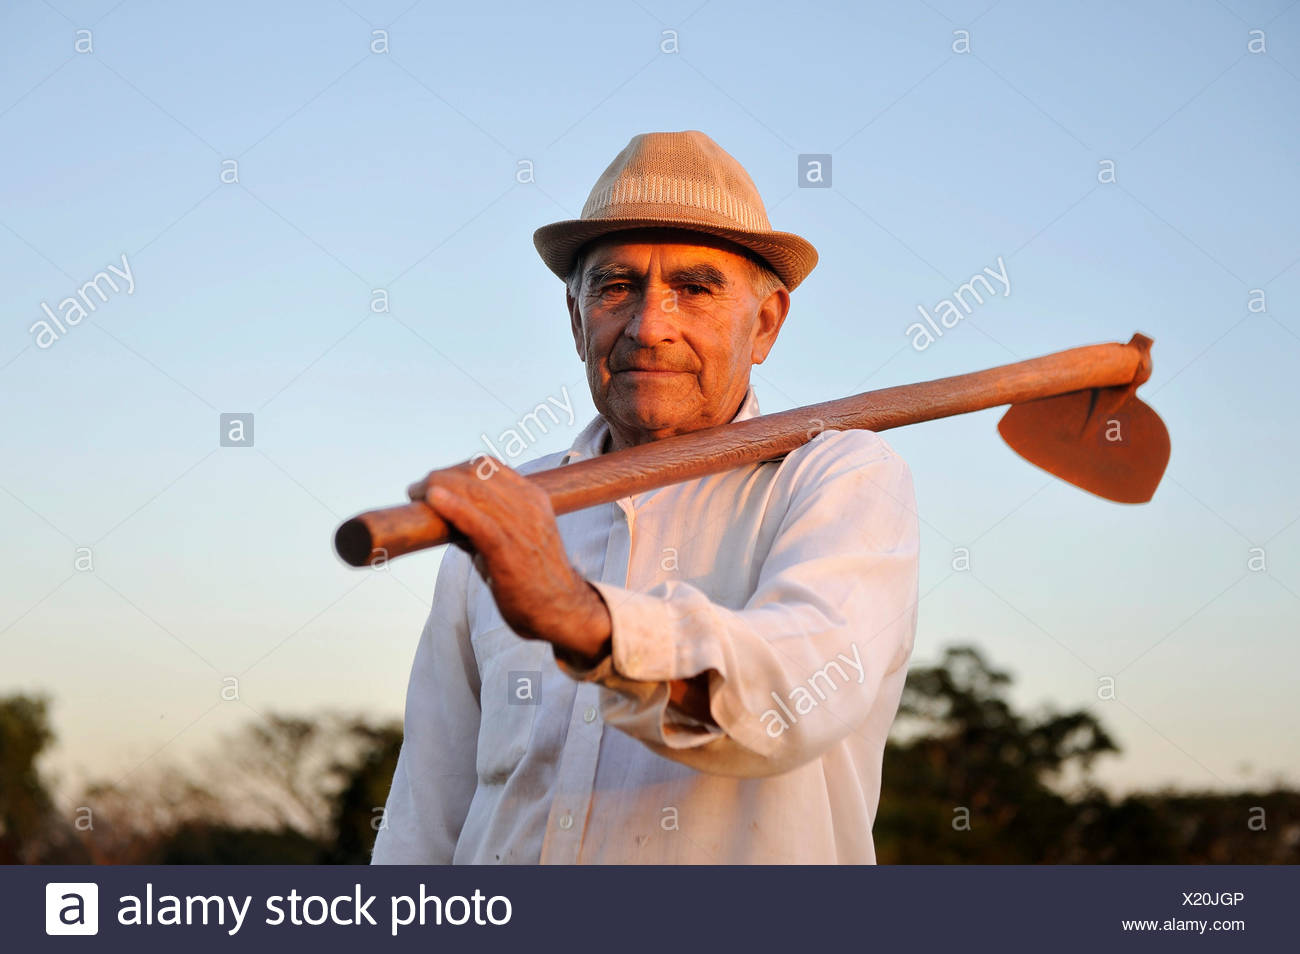 Peasant farmer, 70, holding a hoe, Pastoreo, Caaguazú Department, Paraguay - Stock Image